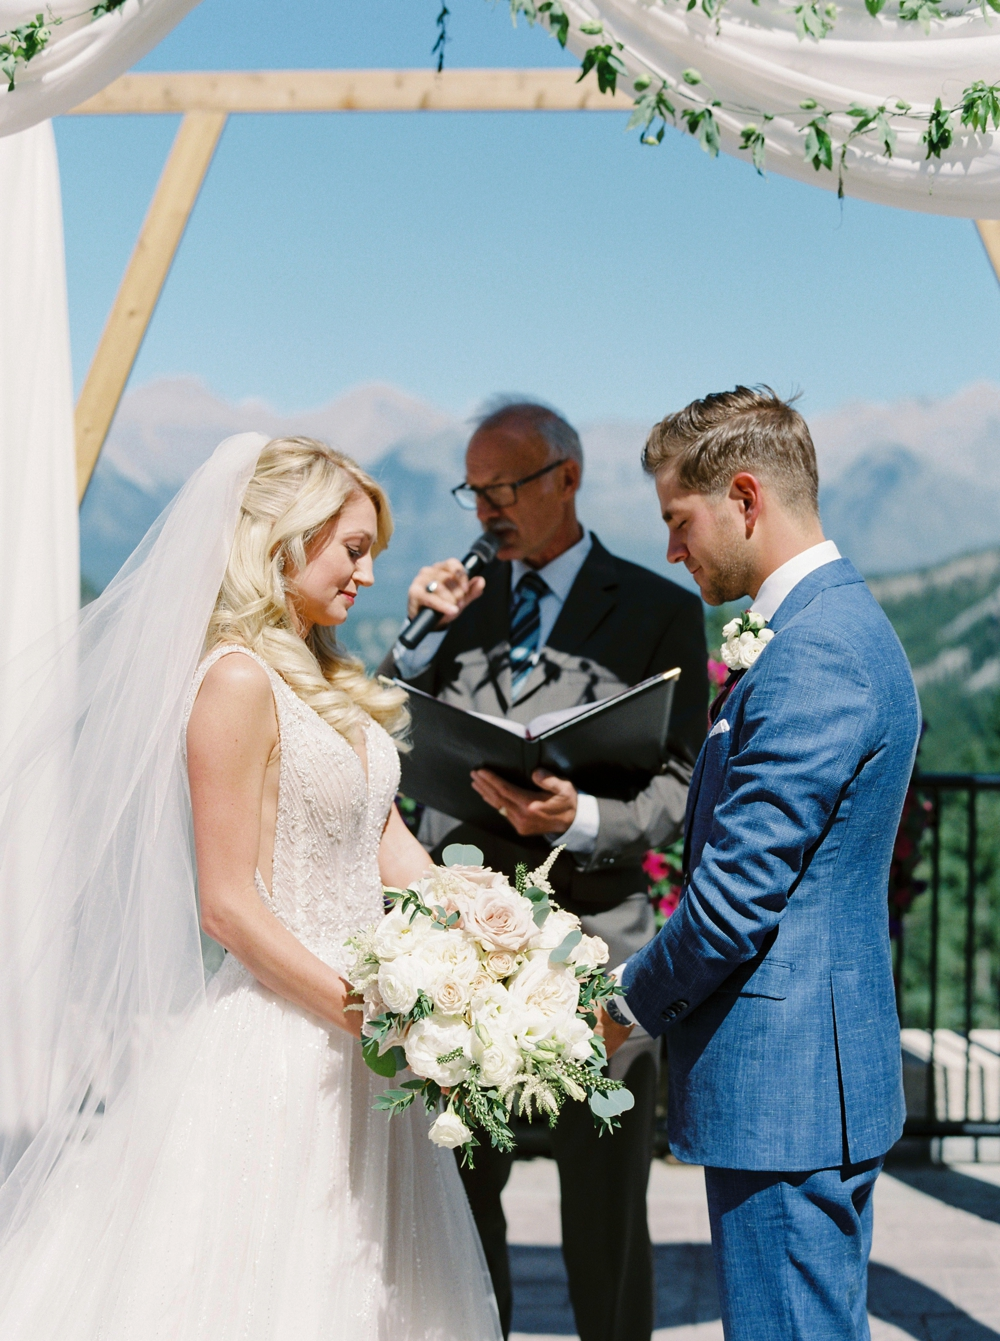 Wedding ceremony floral arch way decor at the Fairmont Banff Springs Hotel | Banff Rocky Mountain Wedding Photographers | Justine Milton fine art film photography